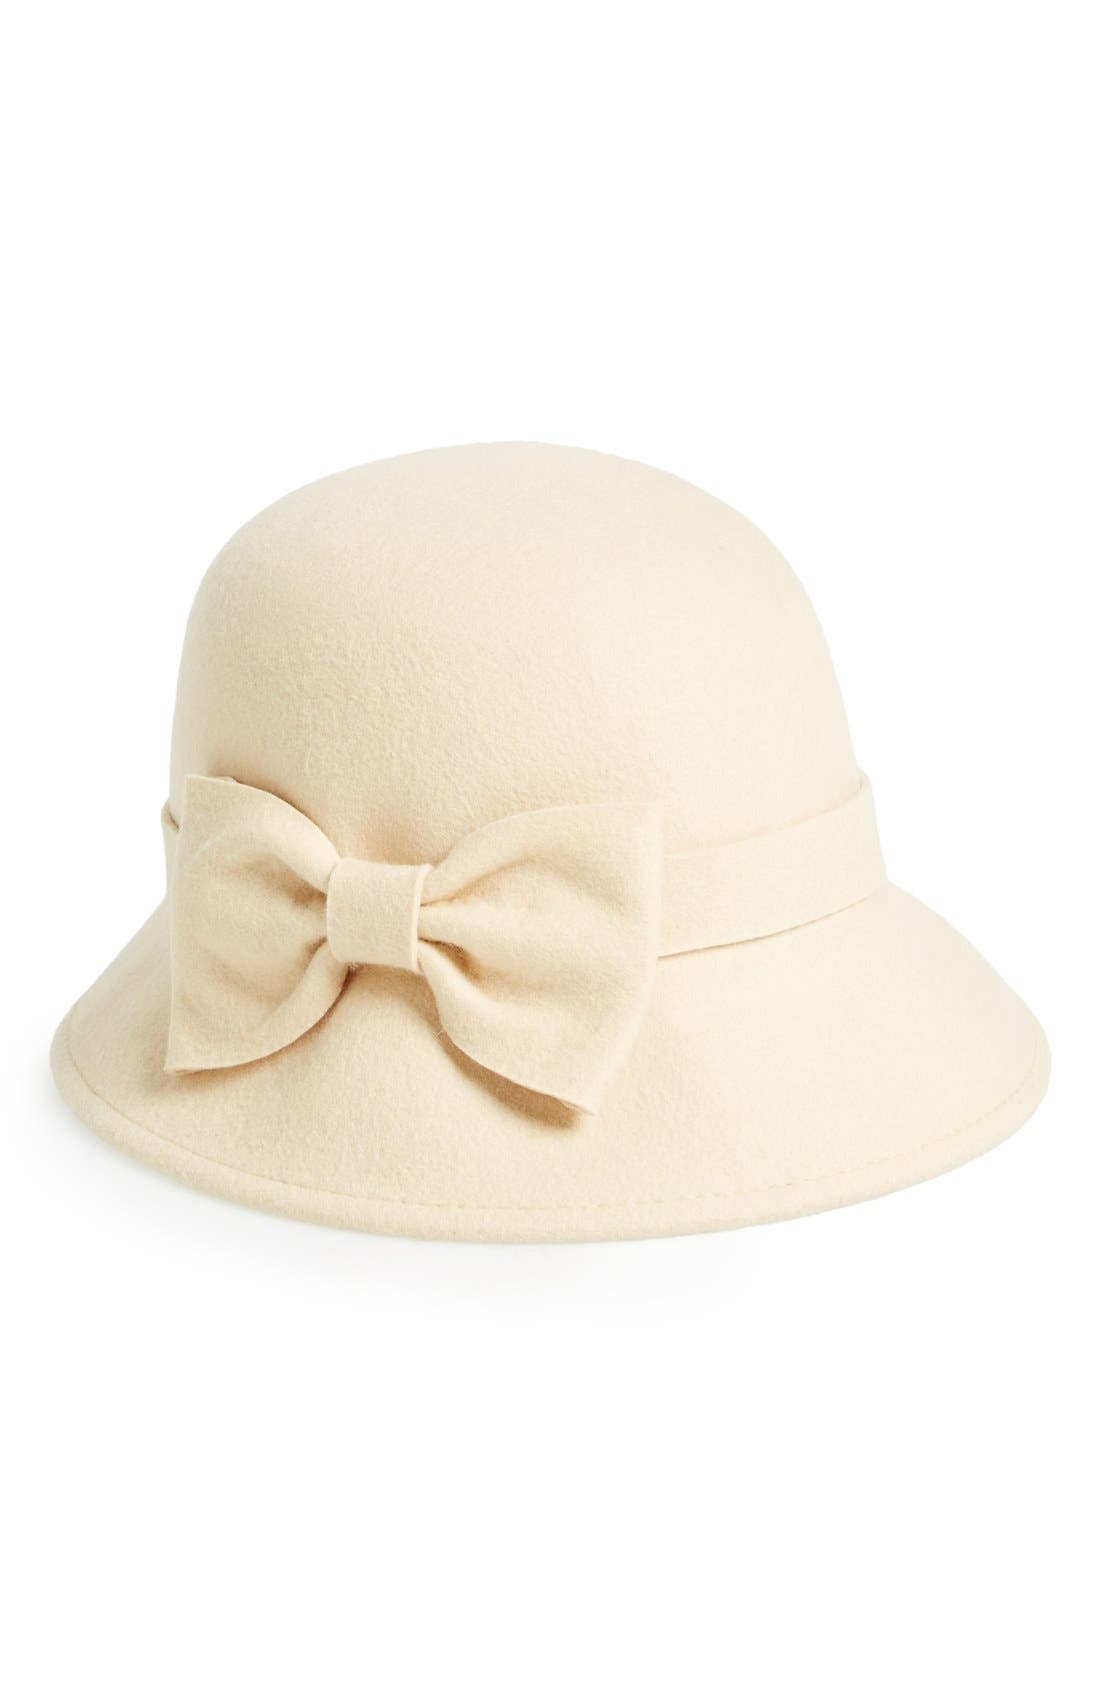 Main Image - kate spade new york felted wool downbrim hat